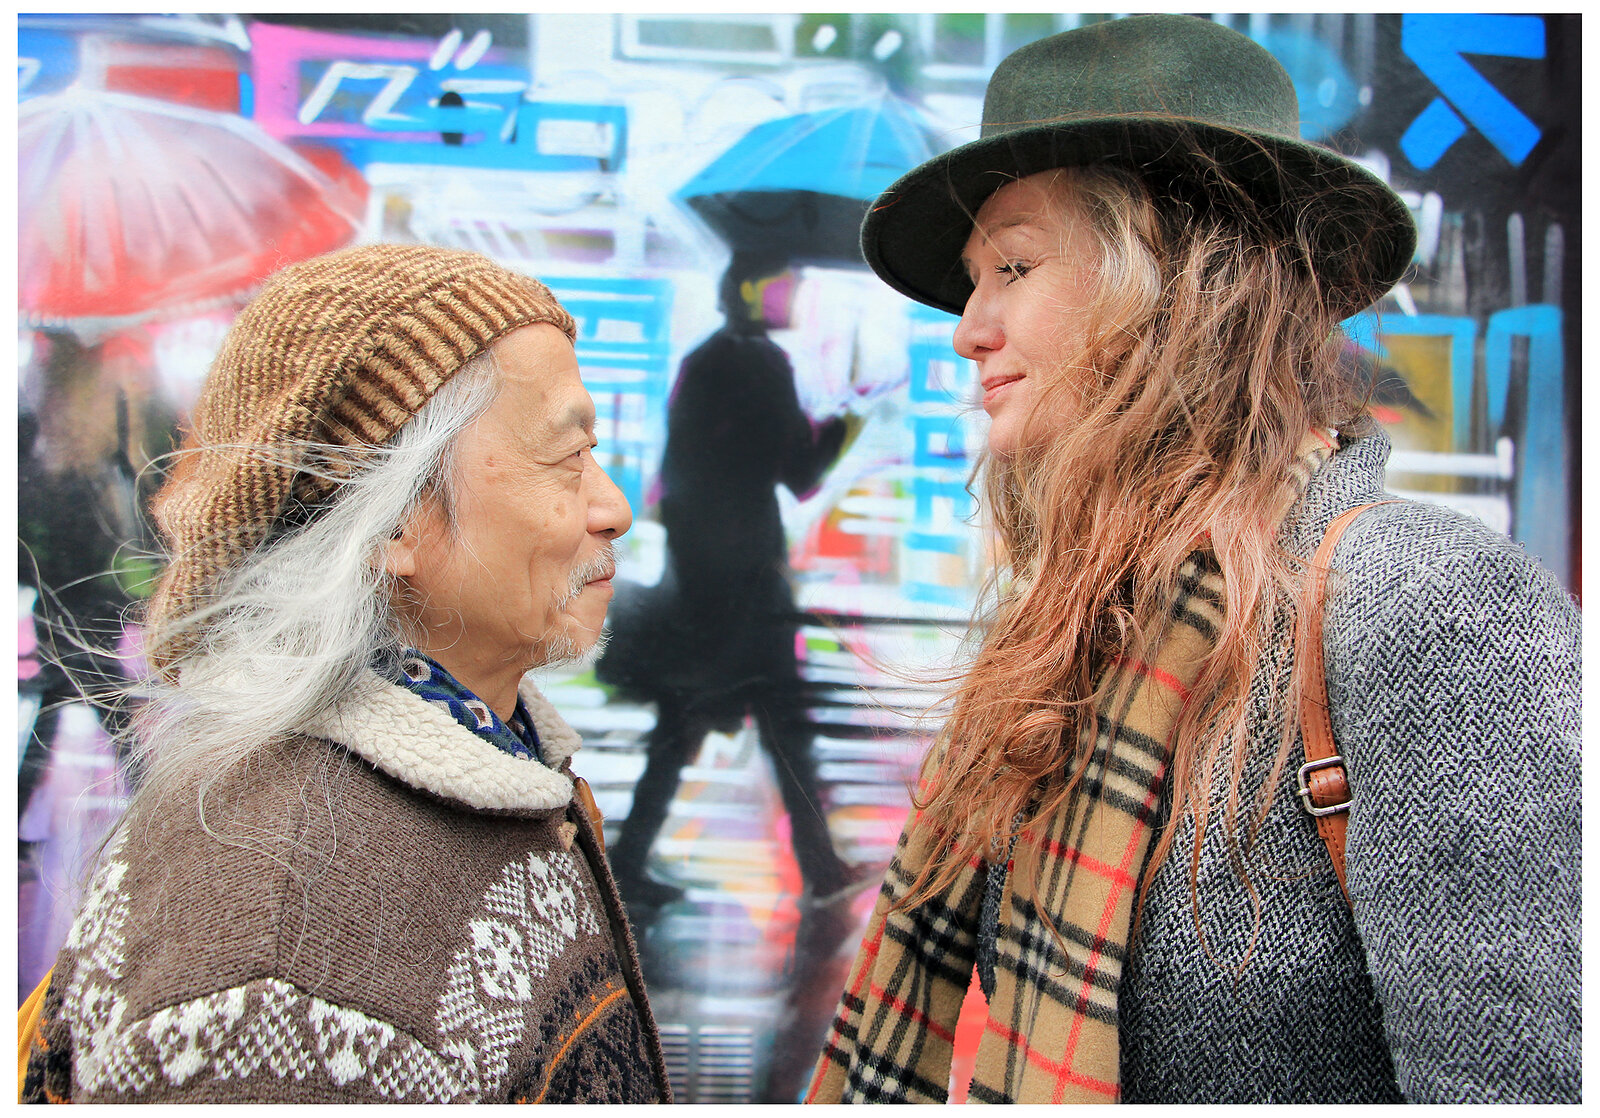 Damo Suzuki & Elke Morsbach - London Feb 2020